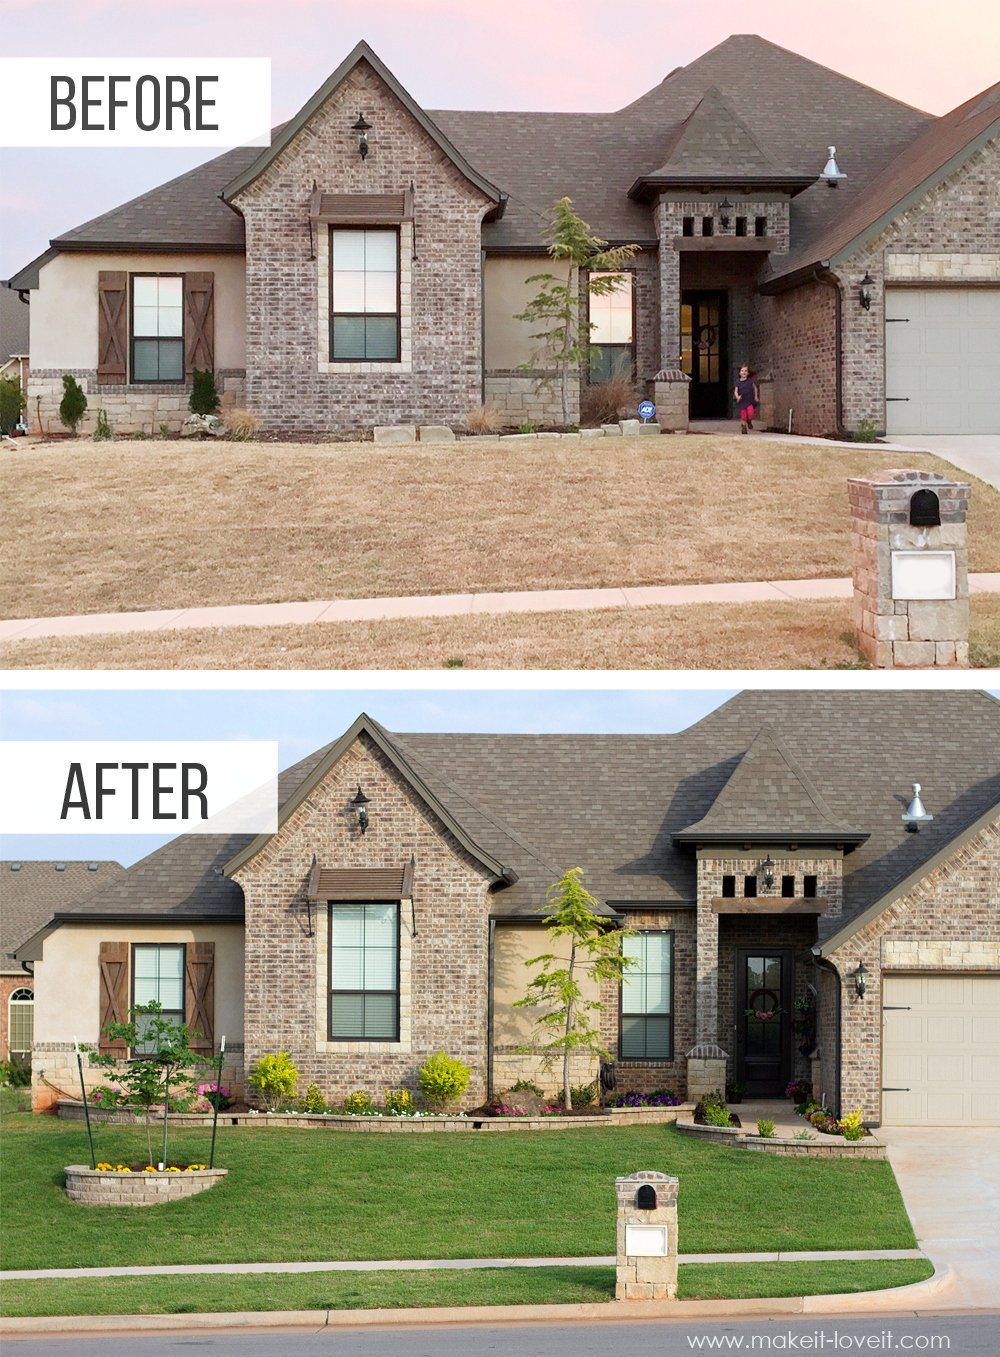 How To Landscape & Hardscape a Front Yard (...from our experience!!) | www.makeit-loveit.com